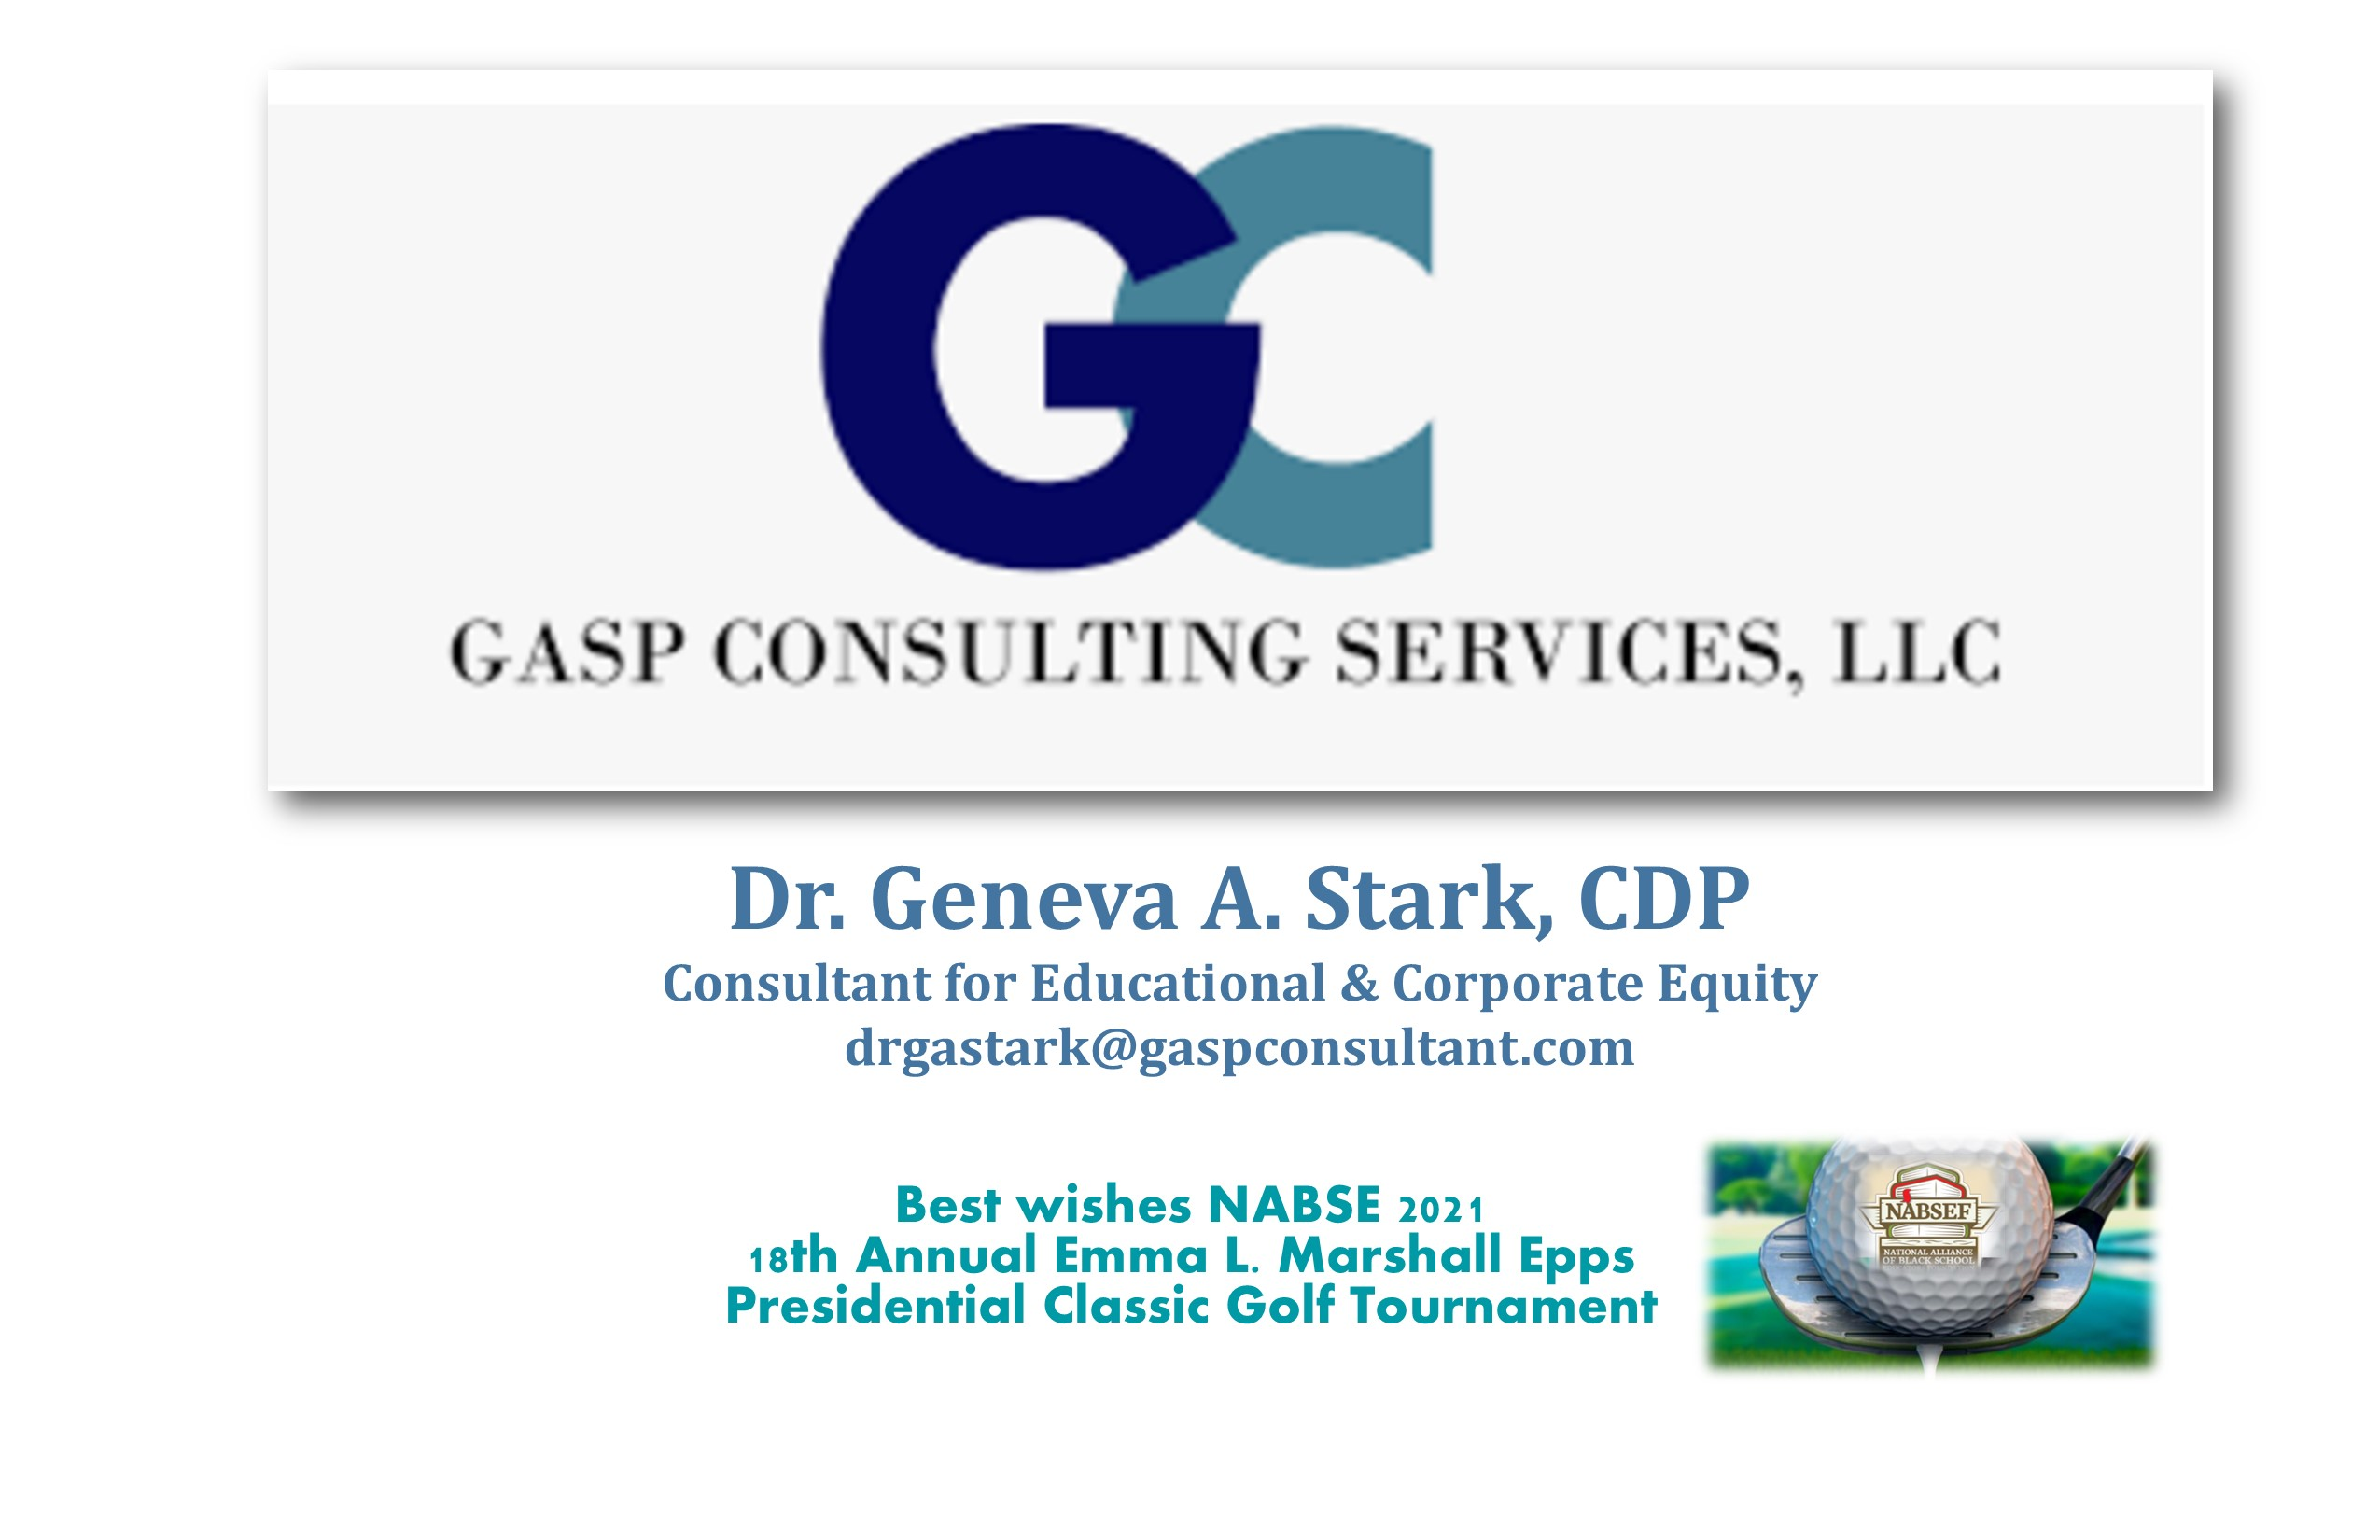 GASP Consulting Services, LLC